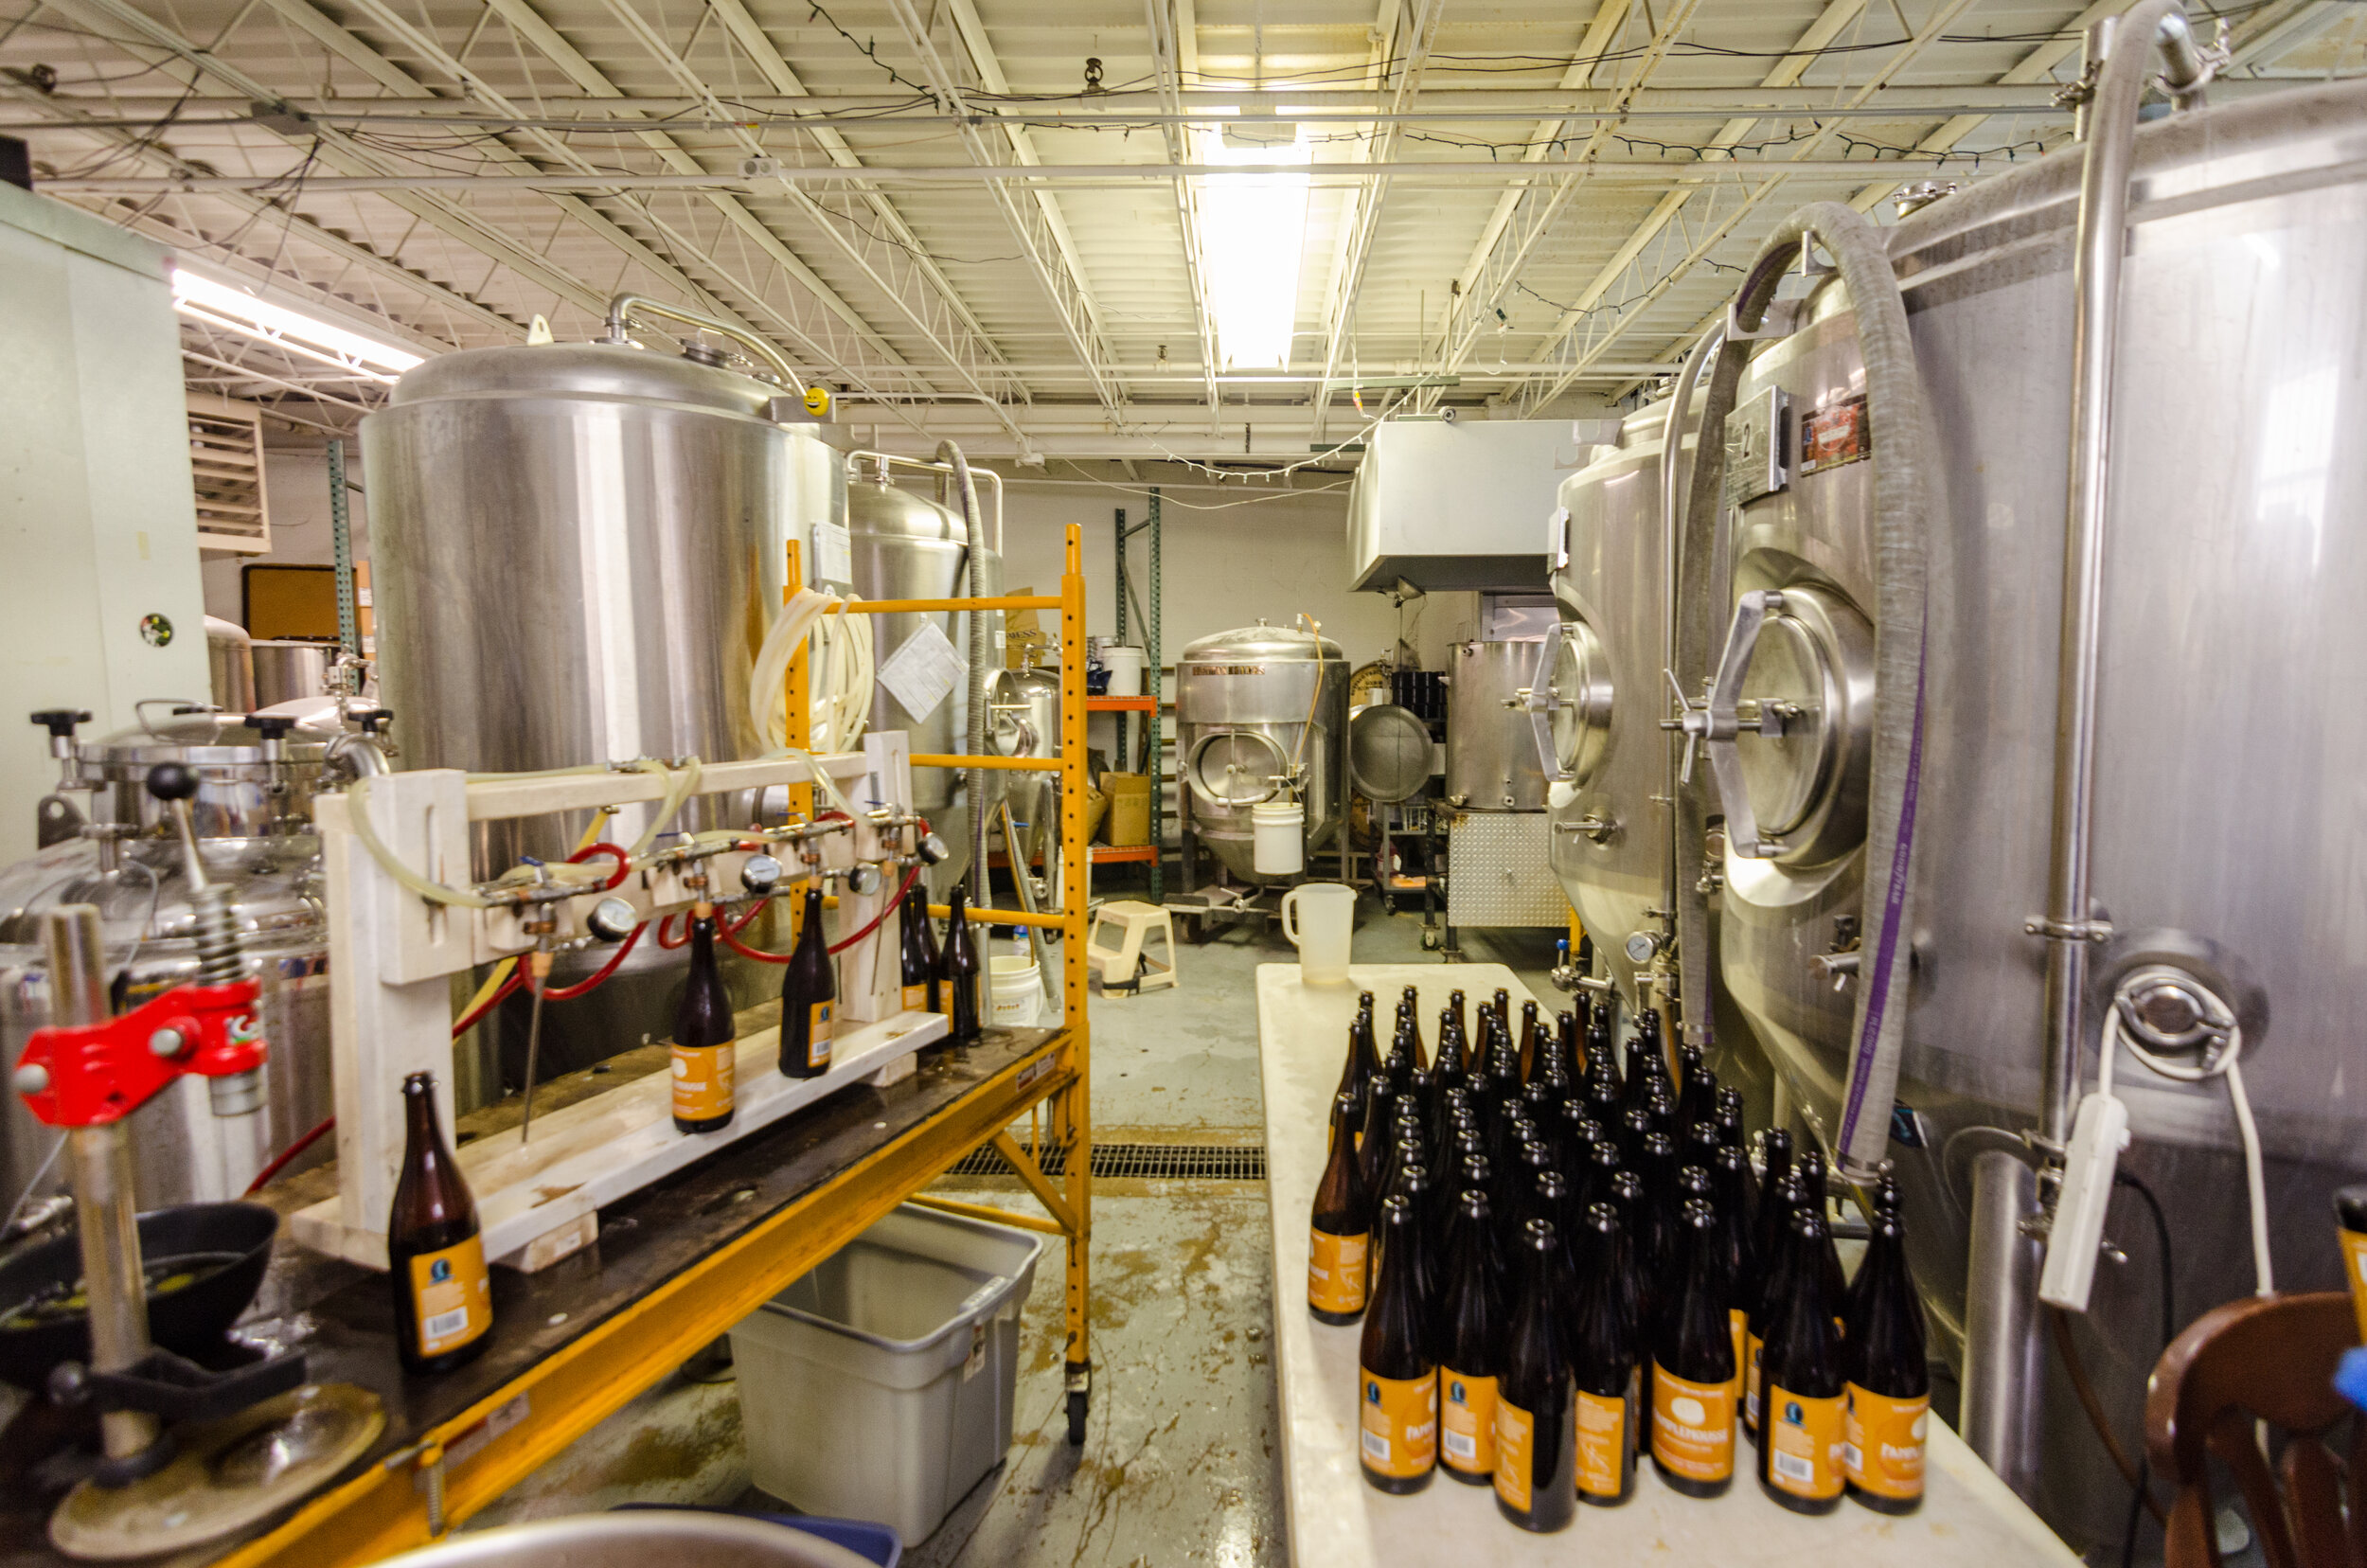 LAKE EFFECT BREWING COMPANY - 4727 W. Montrose Ave., Suite C